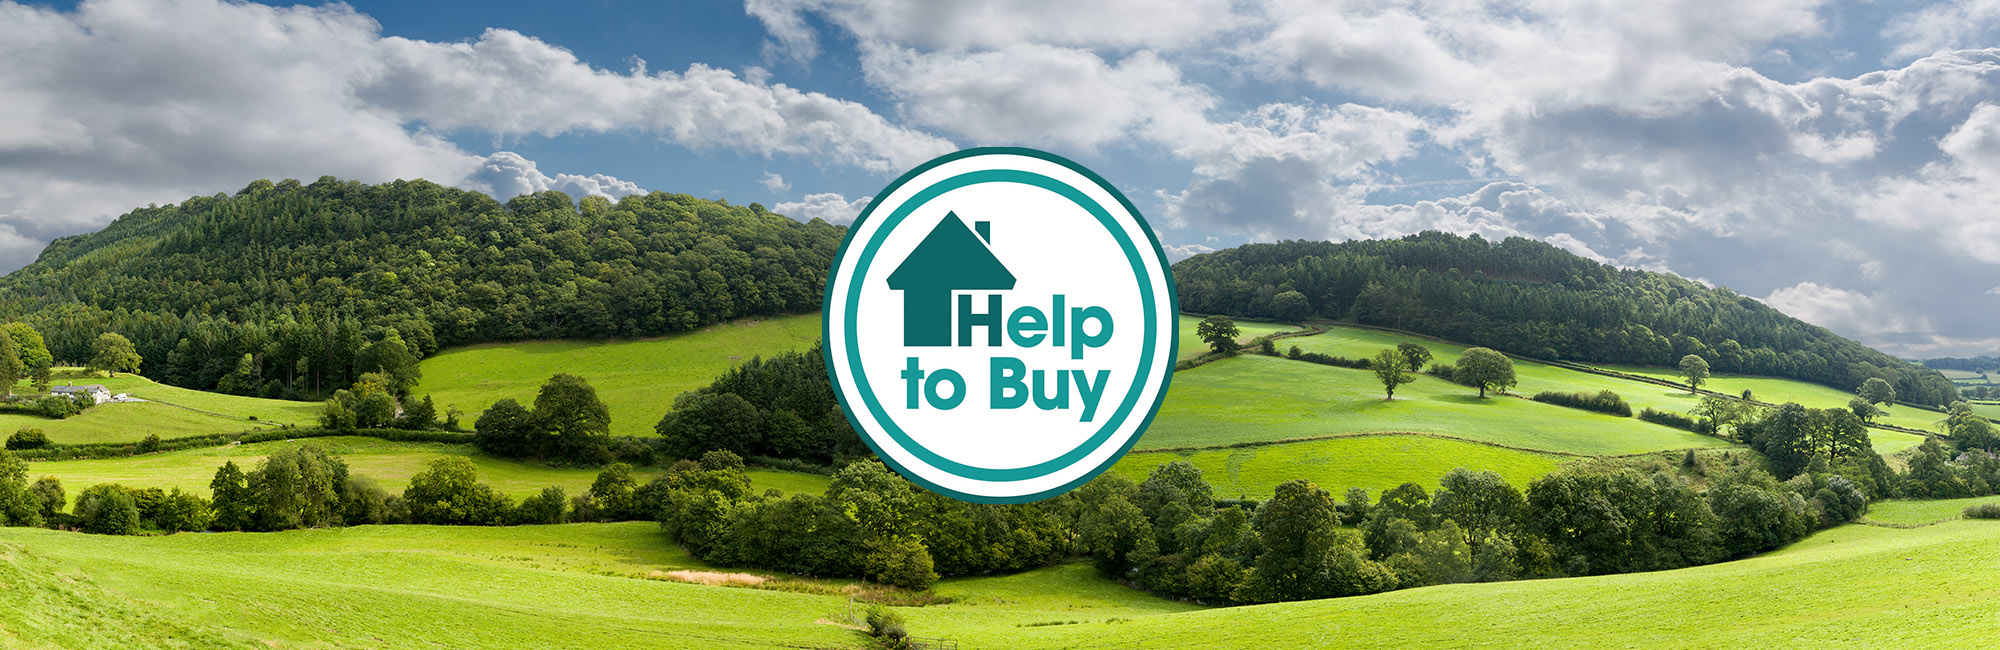 Help to Buy (England)